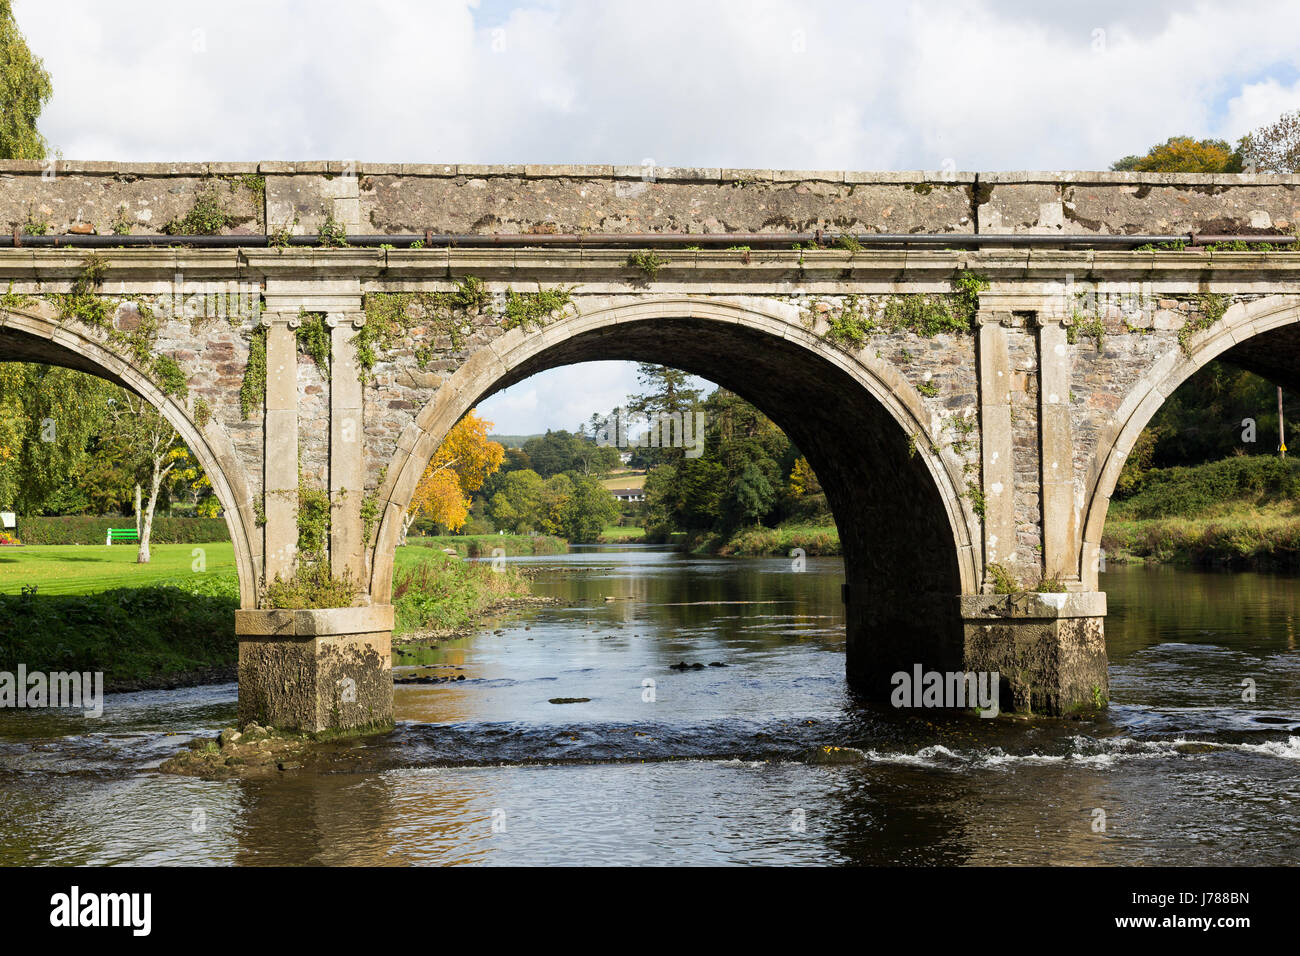 The historic and beautiful Ten Arch stone Bridge over River Nore in Inistioge, Kilkenny, Ireland photographed in - Stock Image